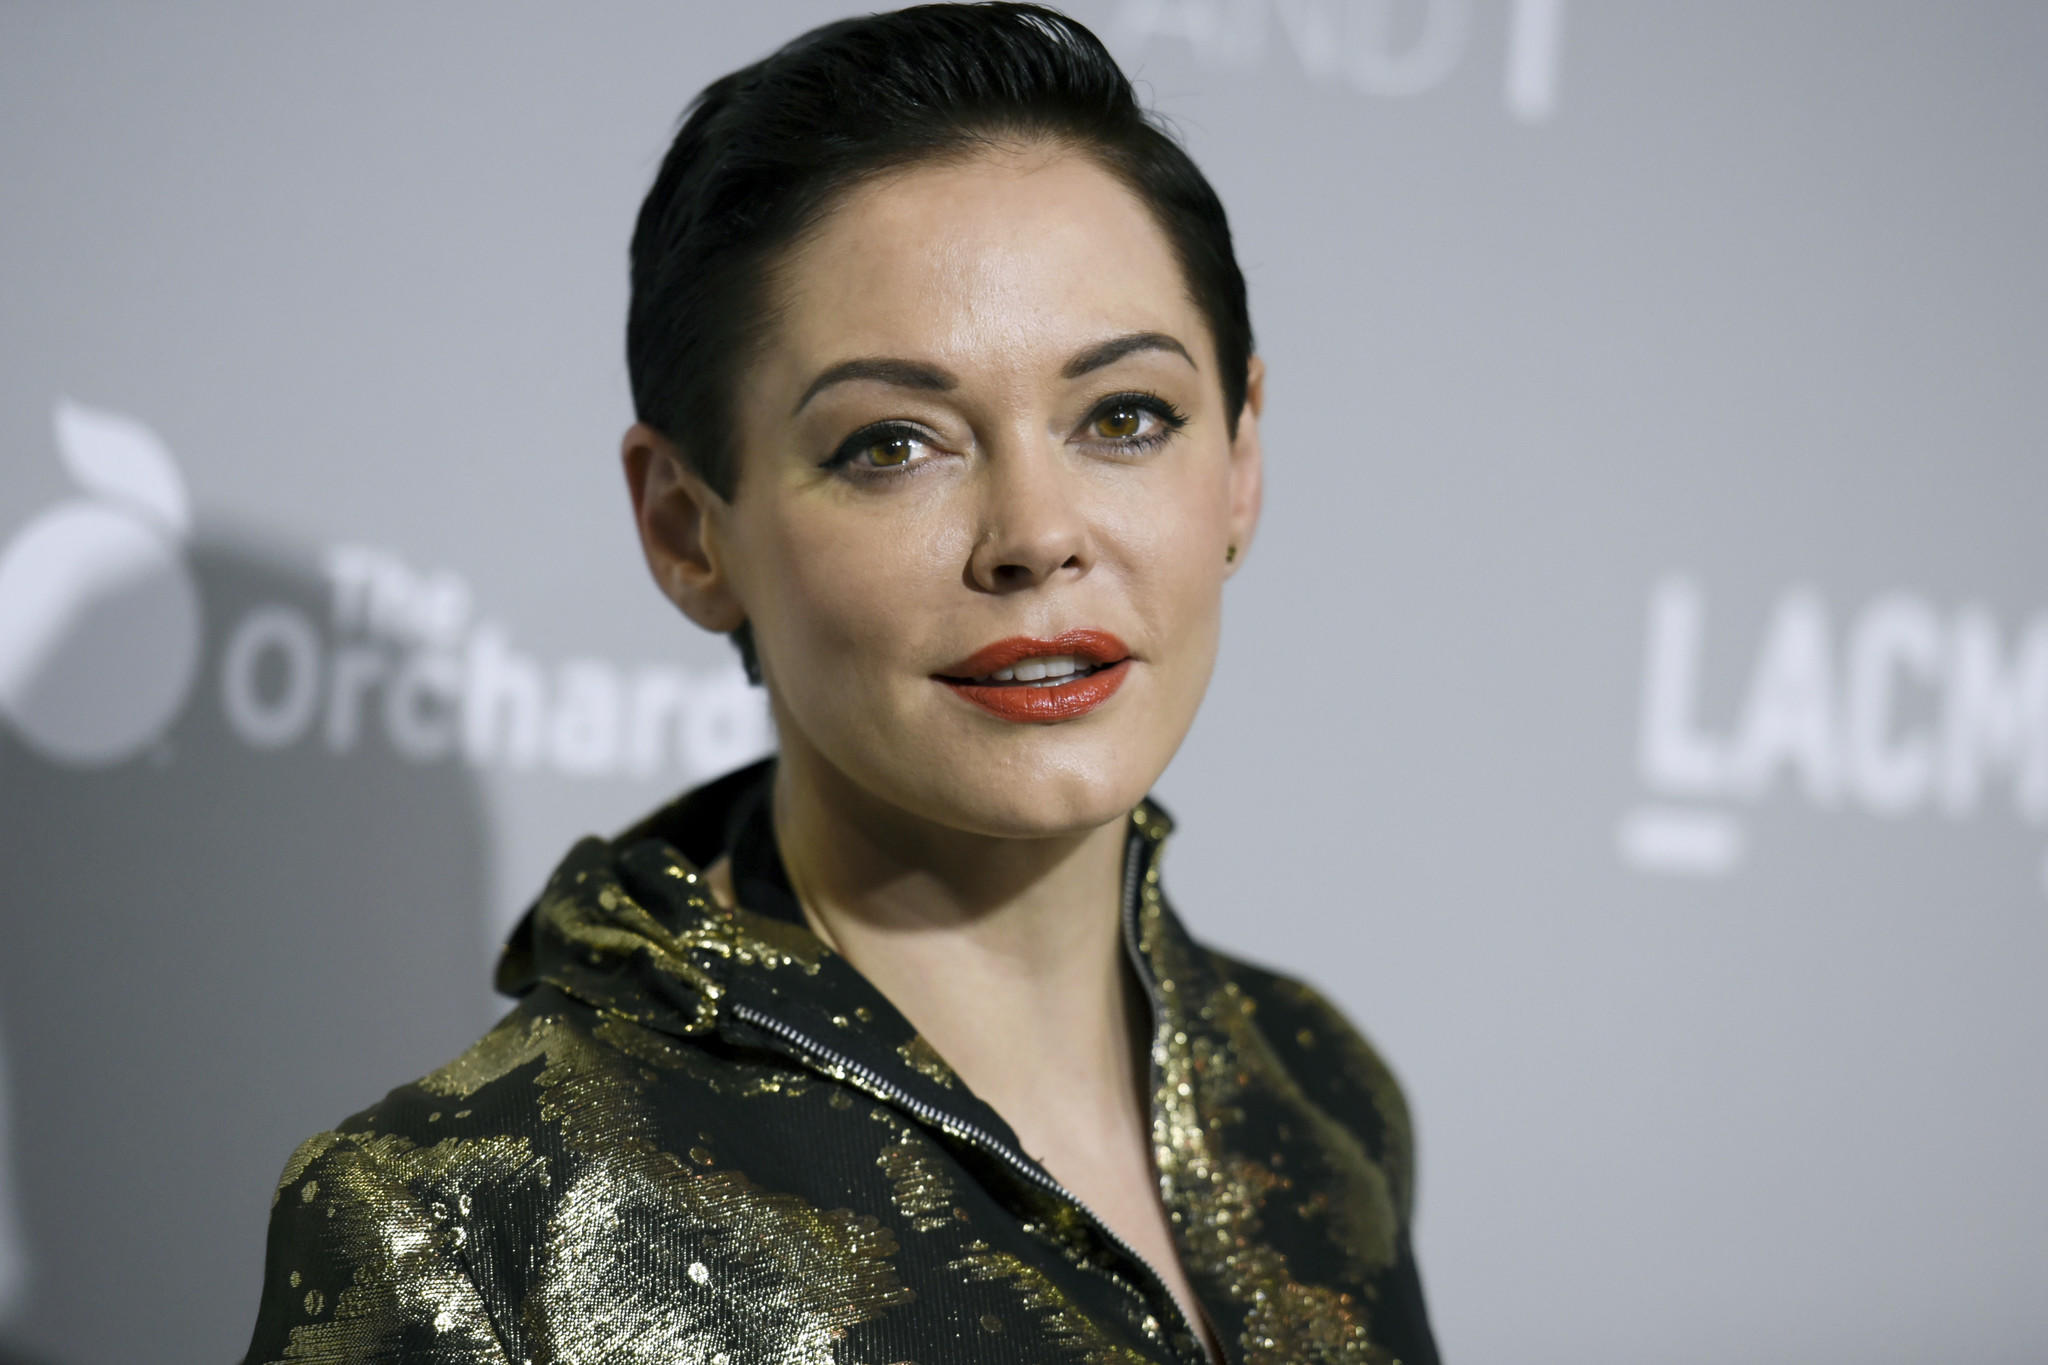 Actress Rose McGowan's rape claim against disgraced mogul Harvey Weinstein